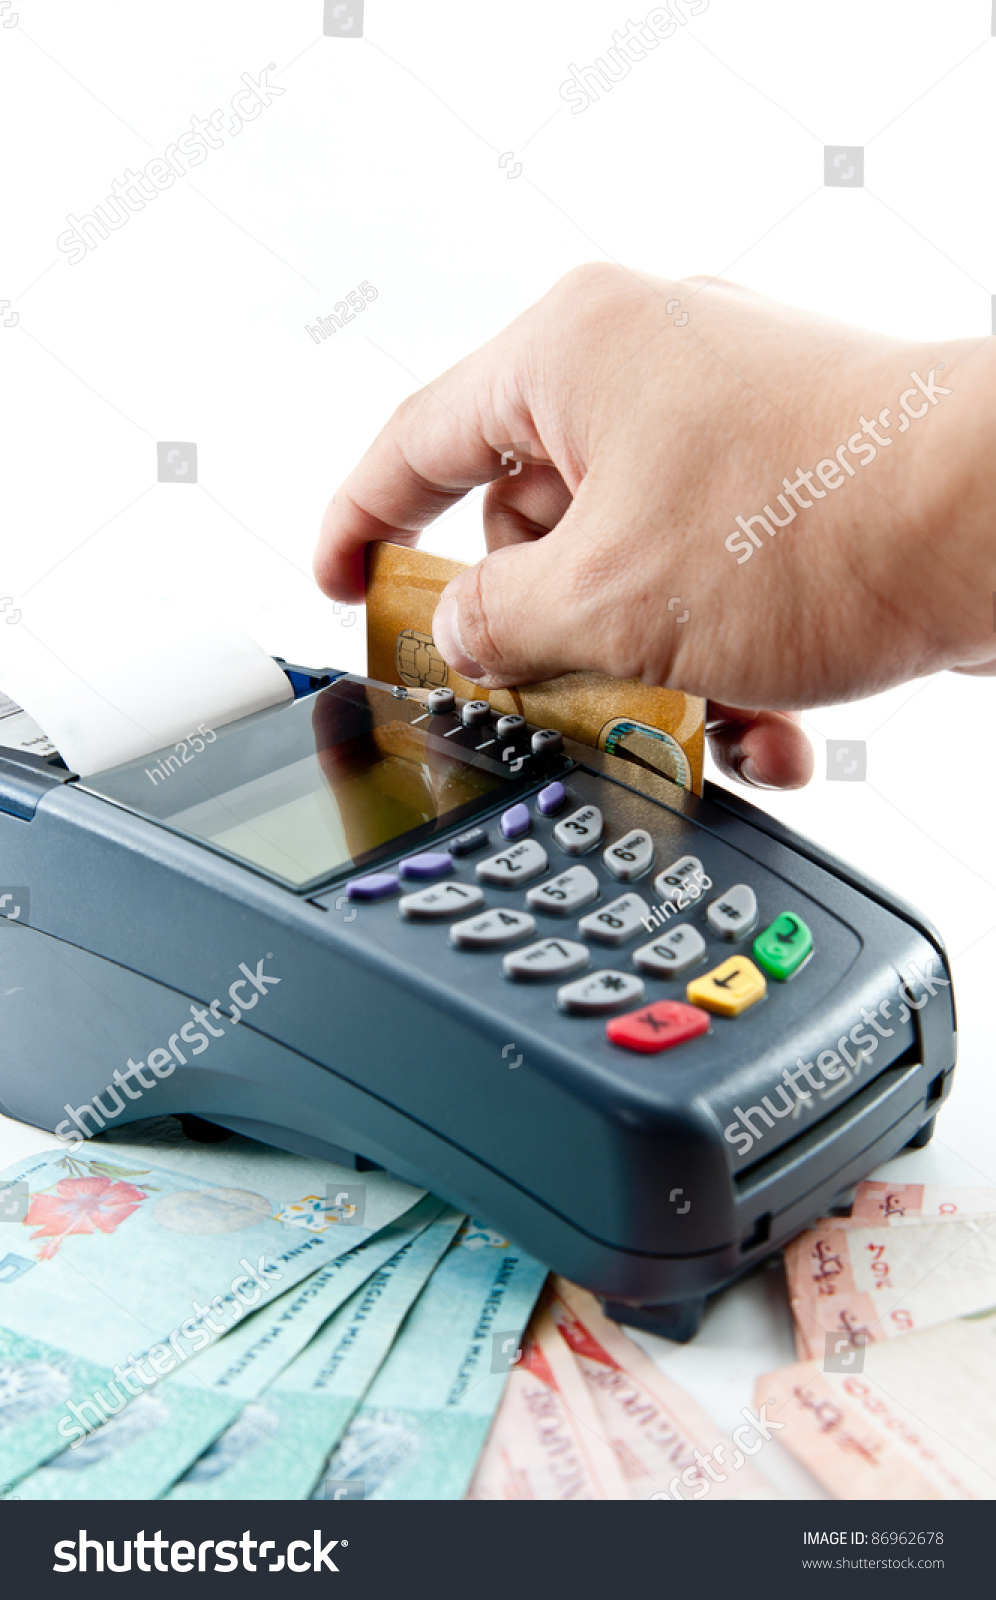 machine for credit card payment